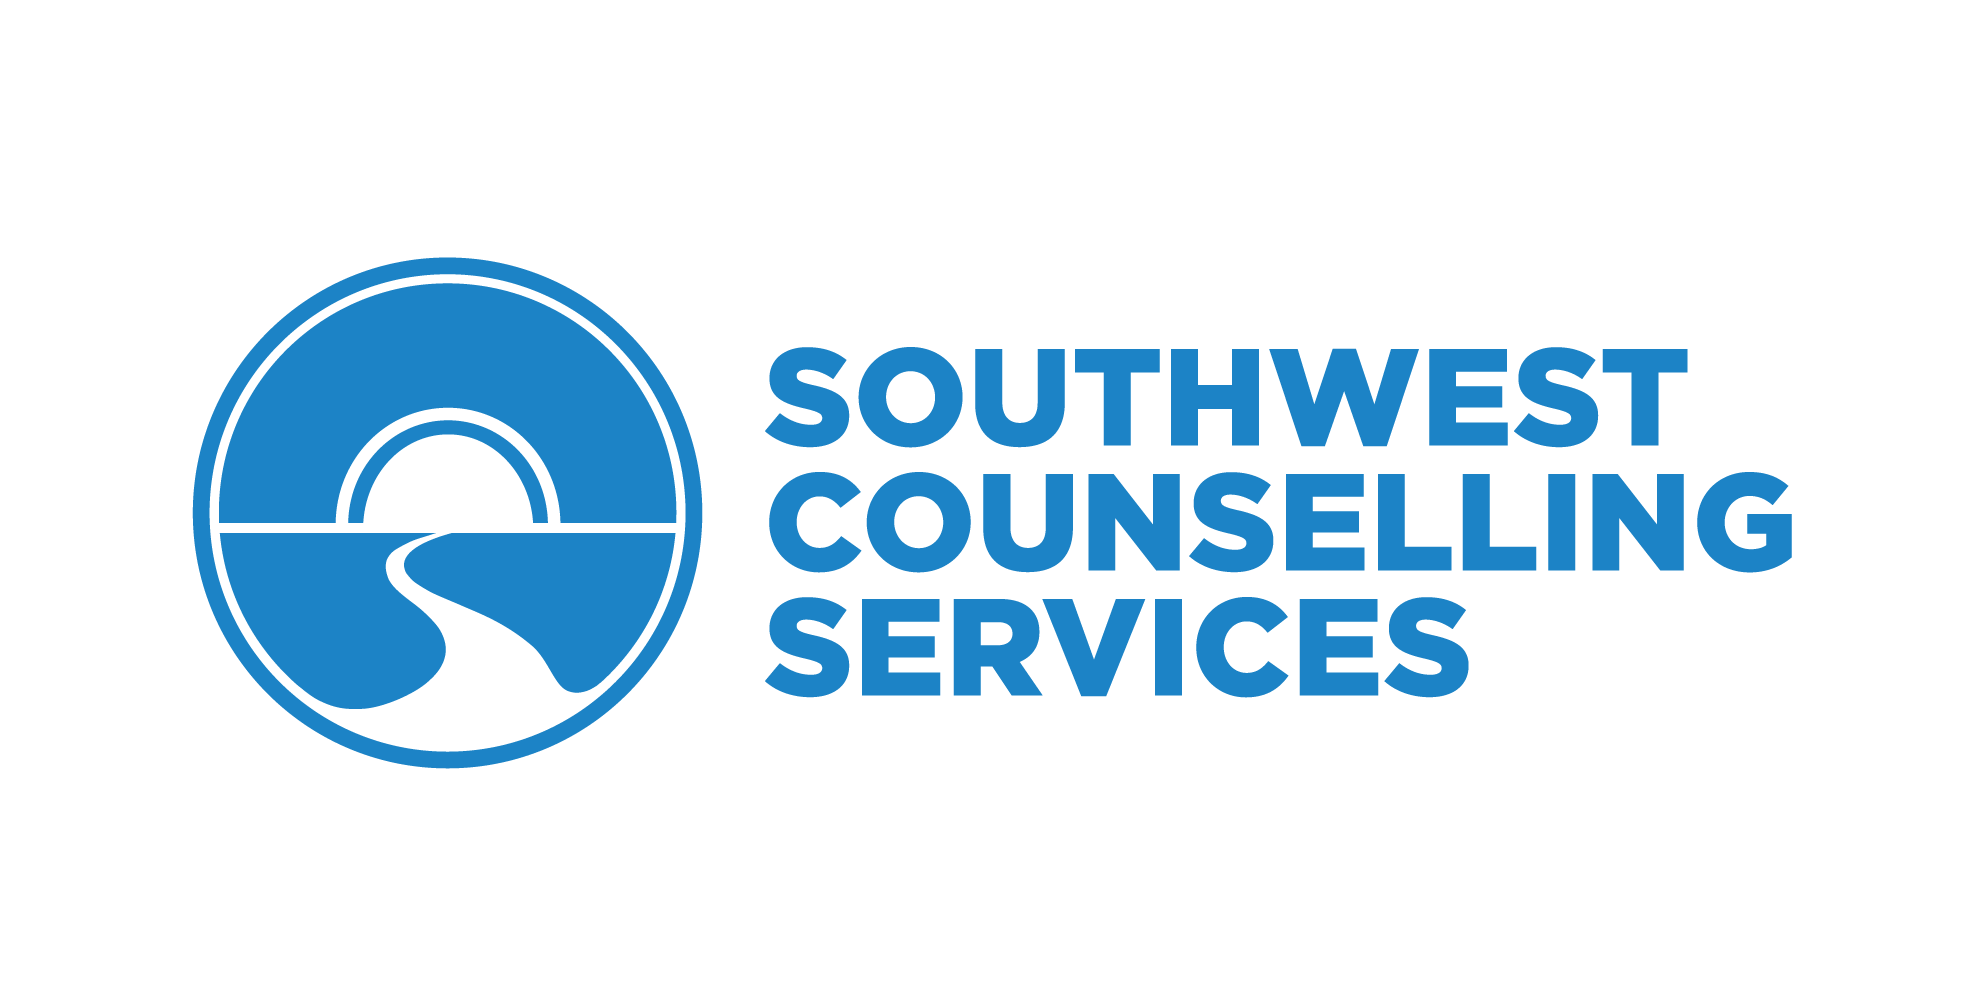 Southwest Counselling Services